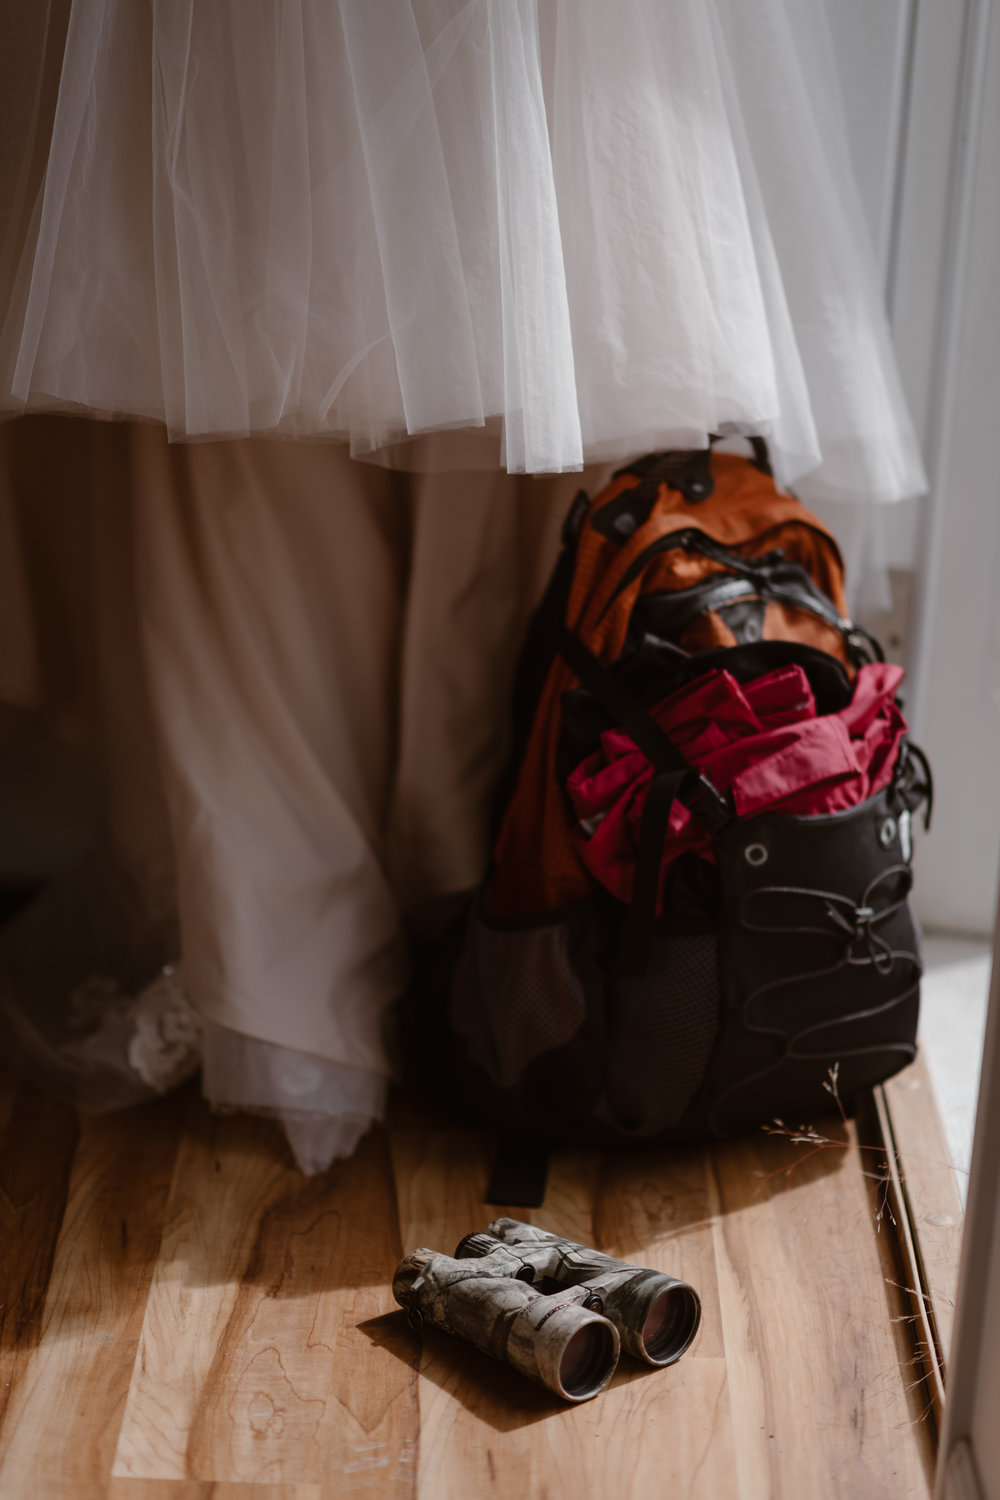 Beneath the skirt of a wedding dress sits a backpack and a pair of dirt-covered binoculars, all items that will be used in this couple's alaska elopement. This image was captured by Adventure Instead, adventure photographers who help couples create unique eloping ideas.